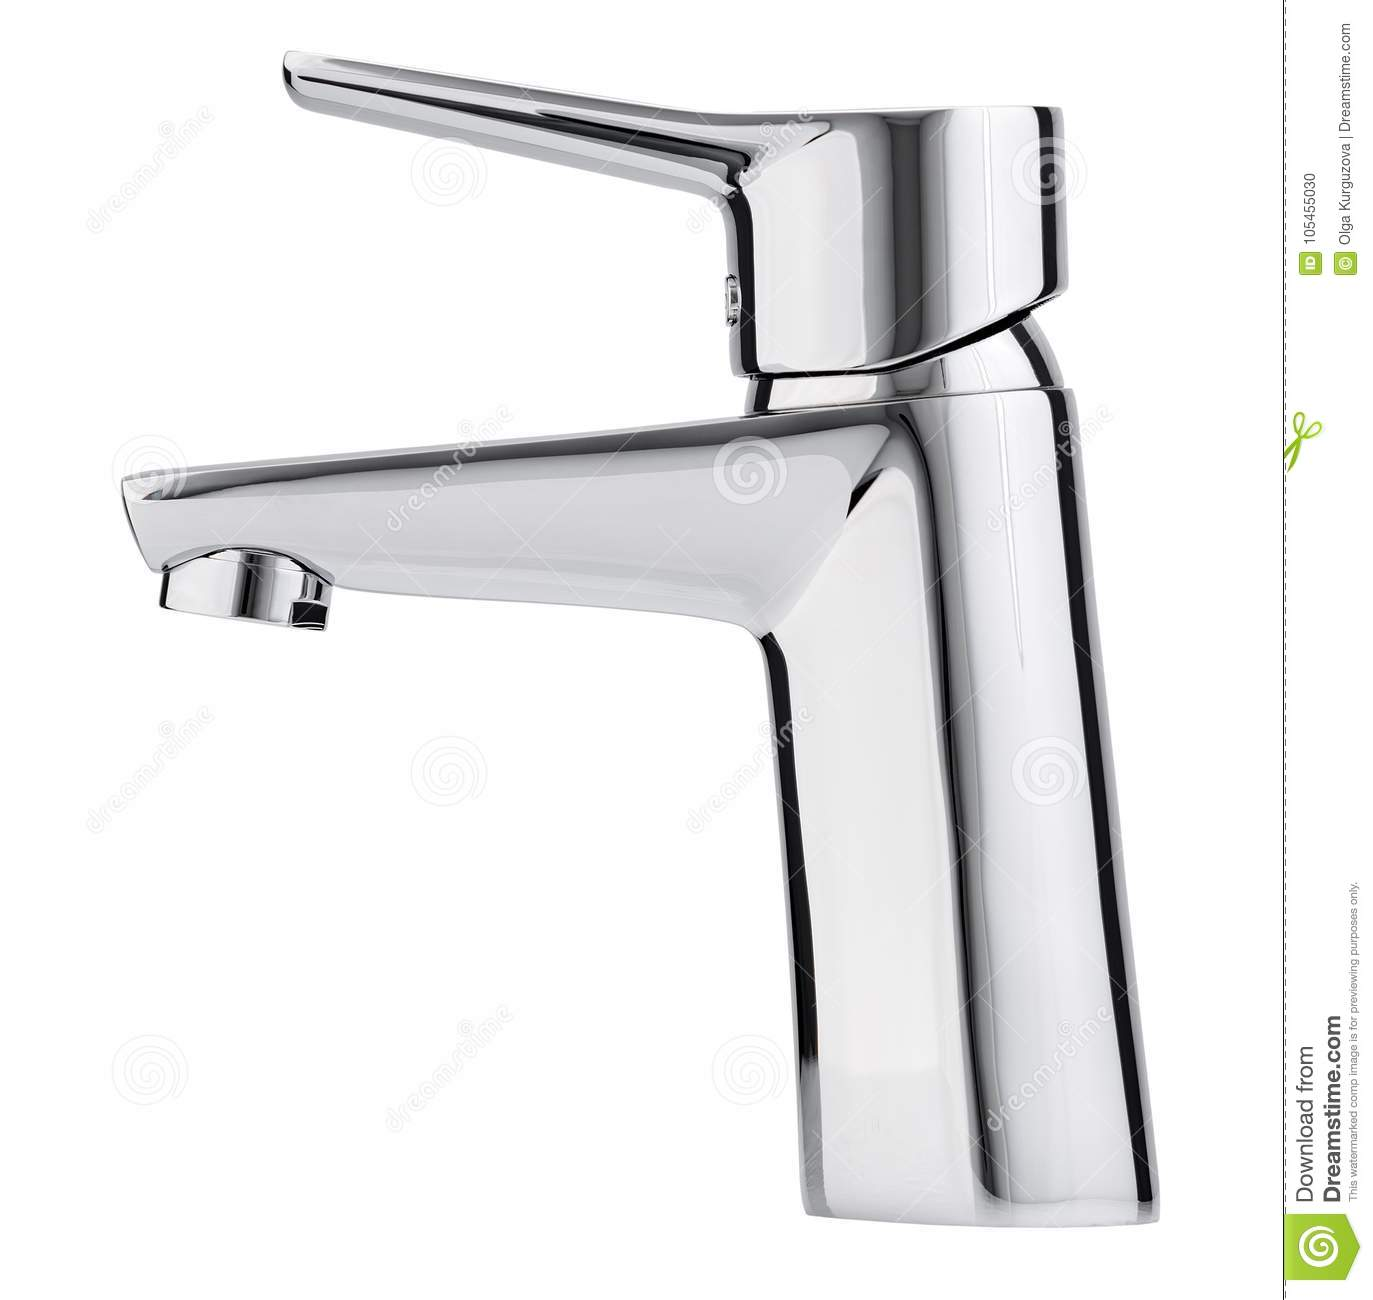 bathroom hot front photo view faucet tap stock water modern mixer background cold white kitchen isolated